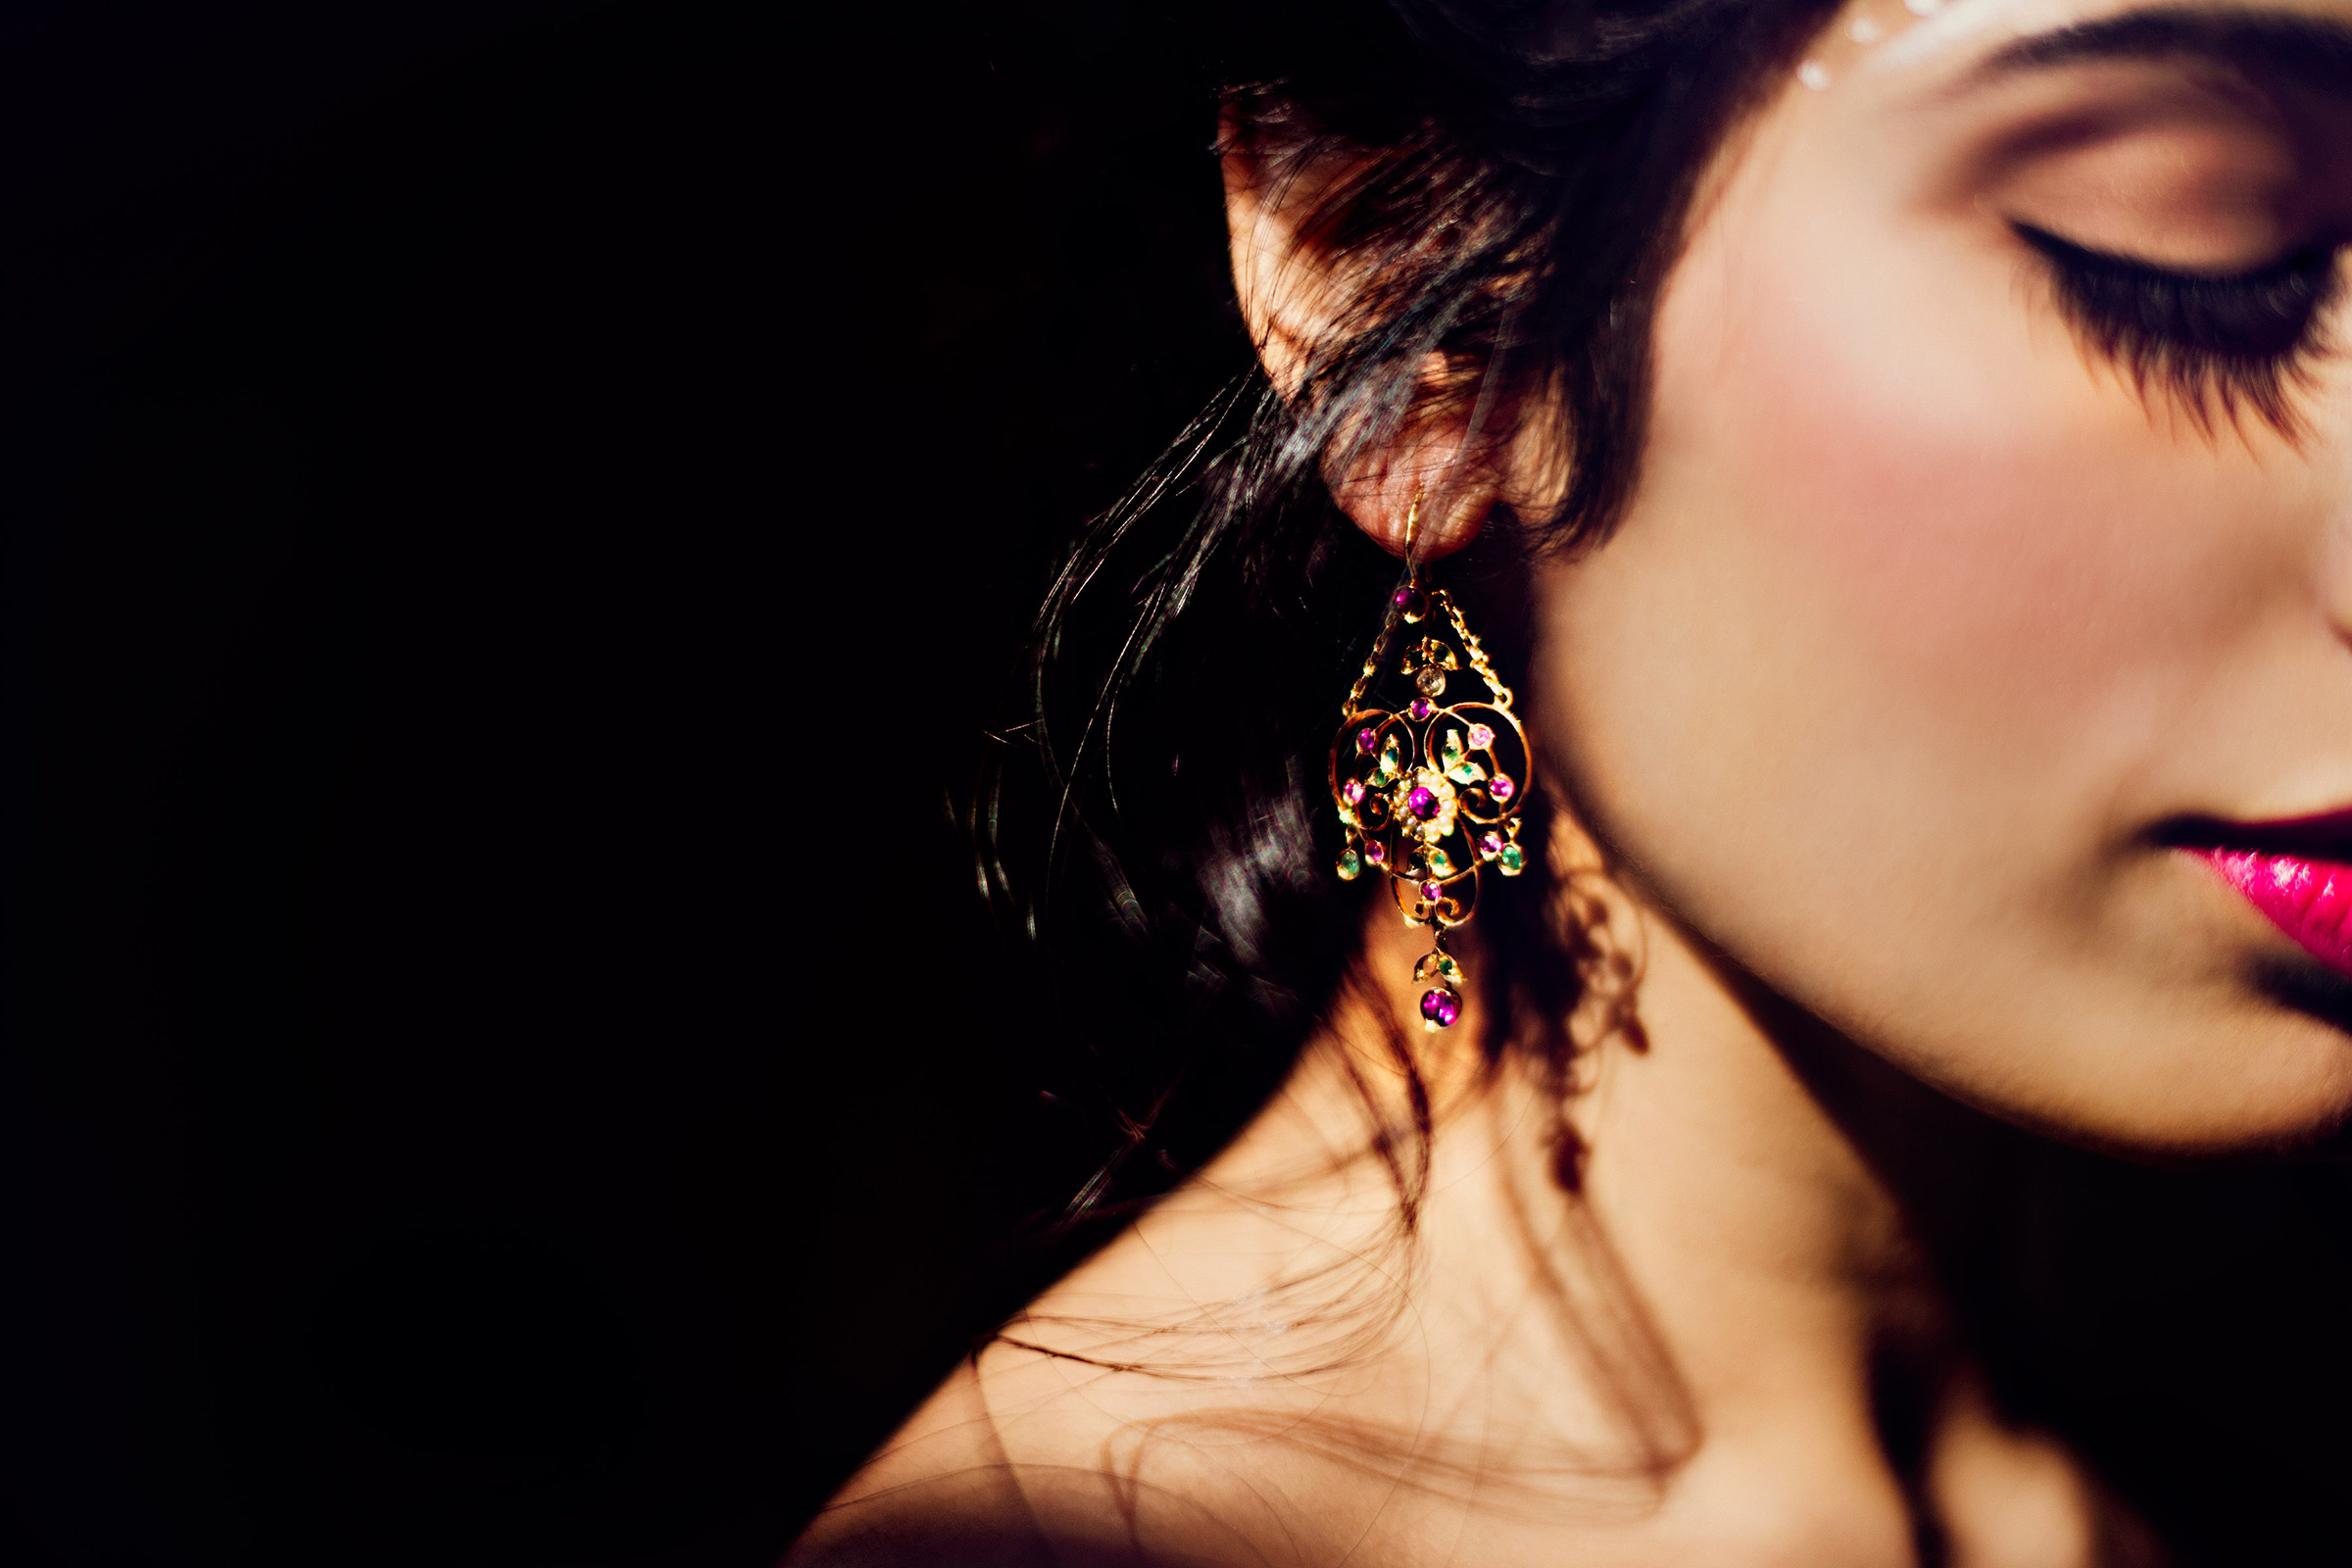 Closeup of bride's face with earring and shadows - photo by Matei Horvath Photography